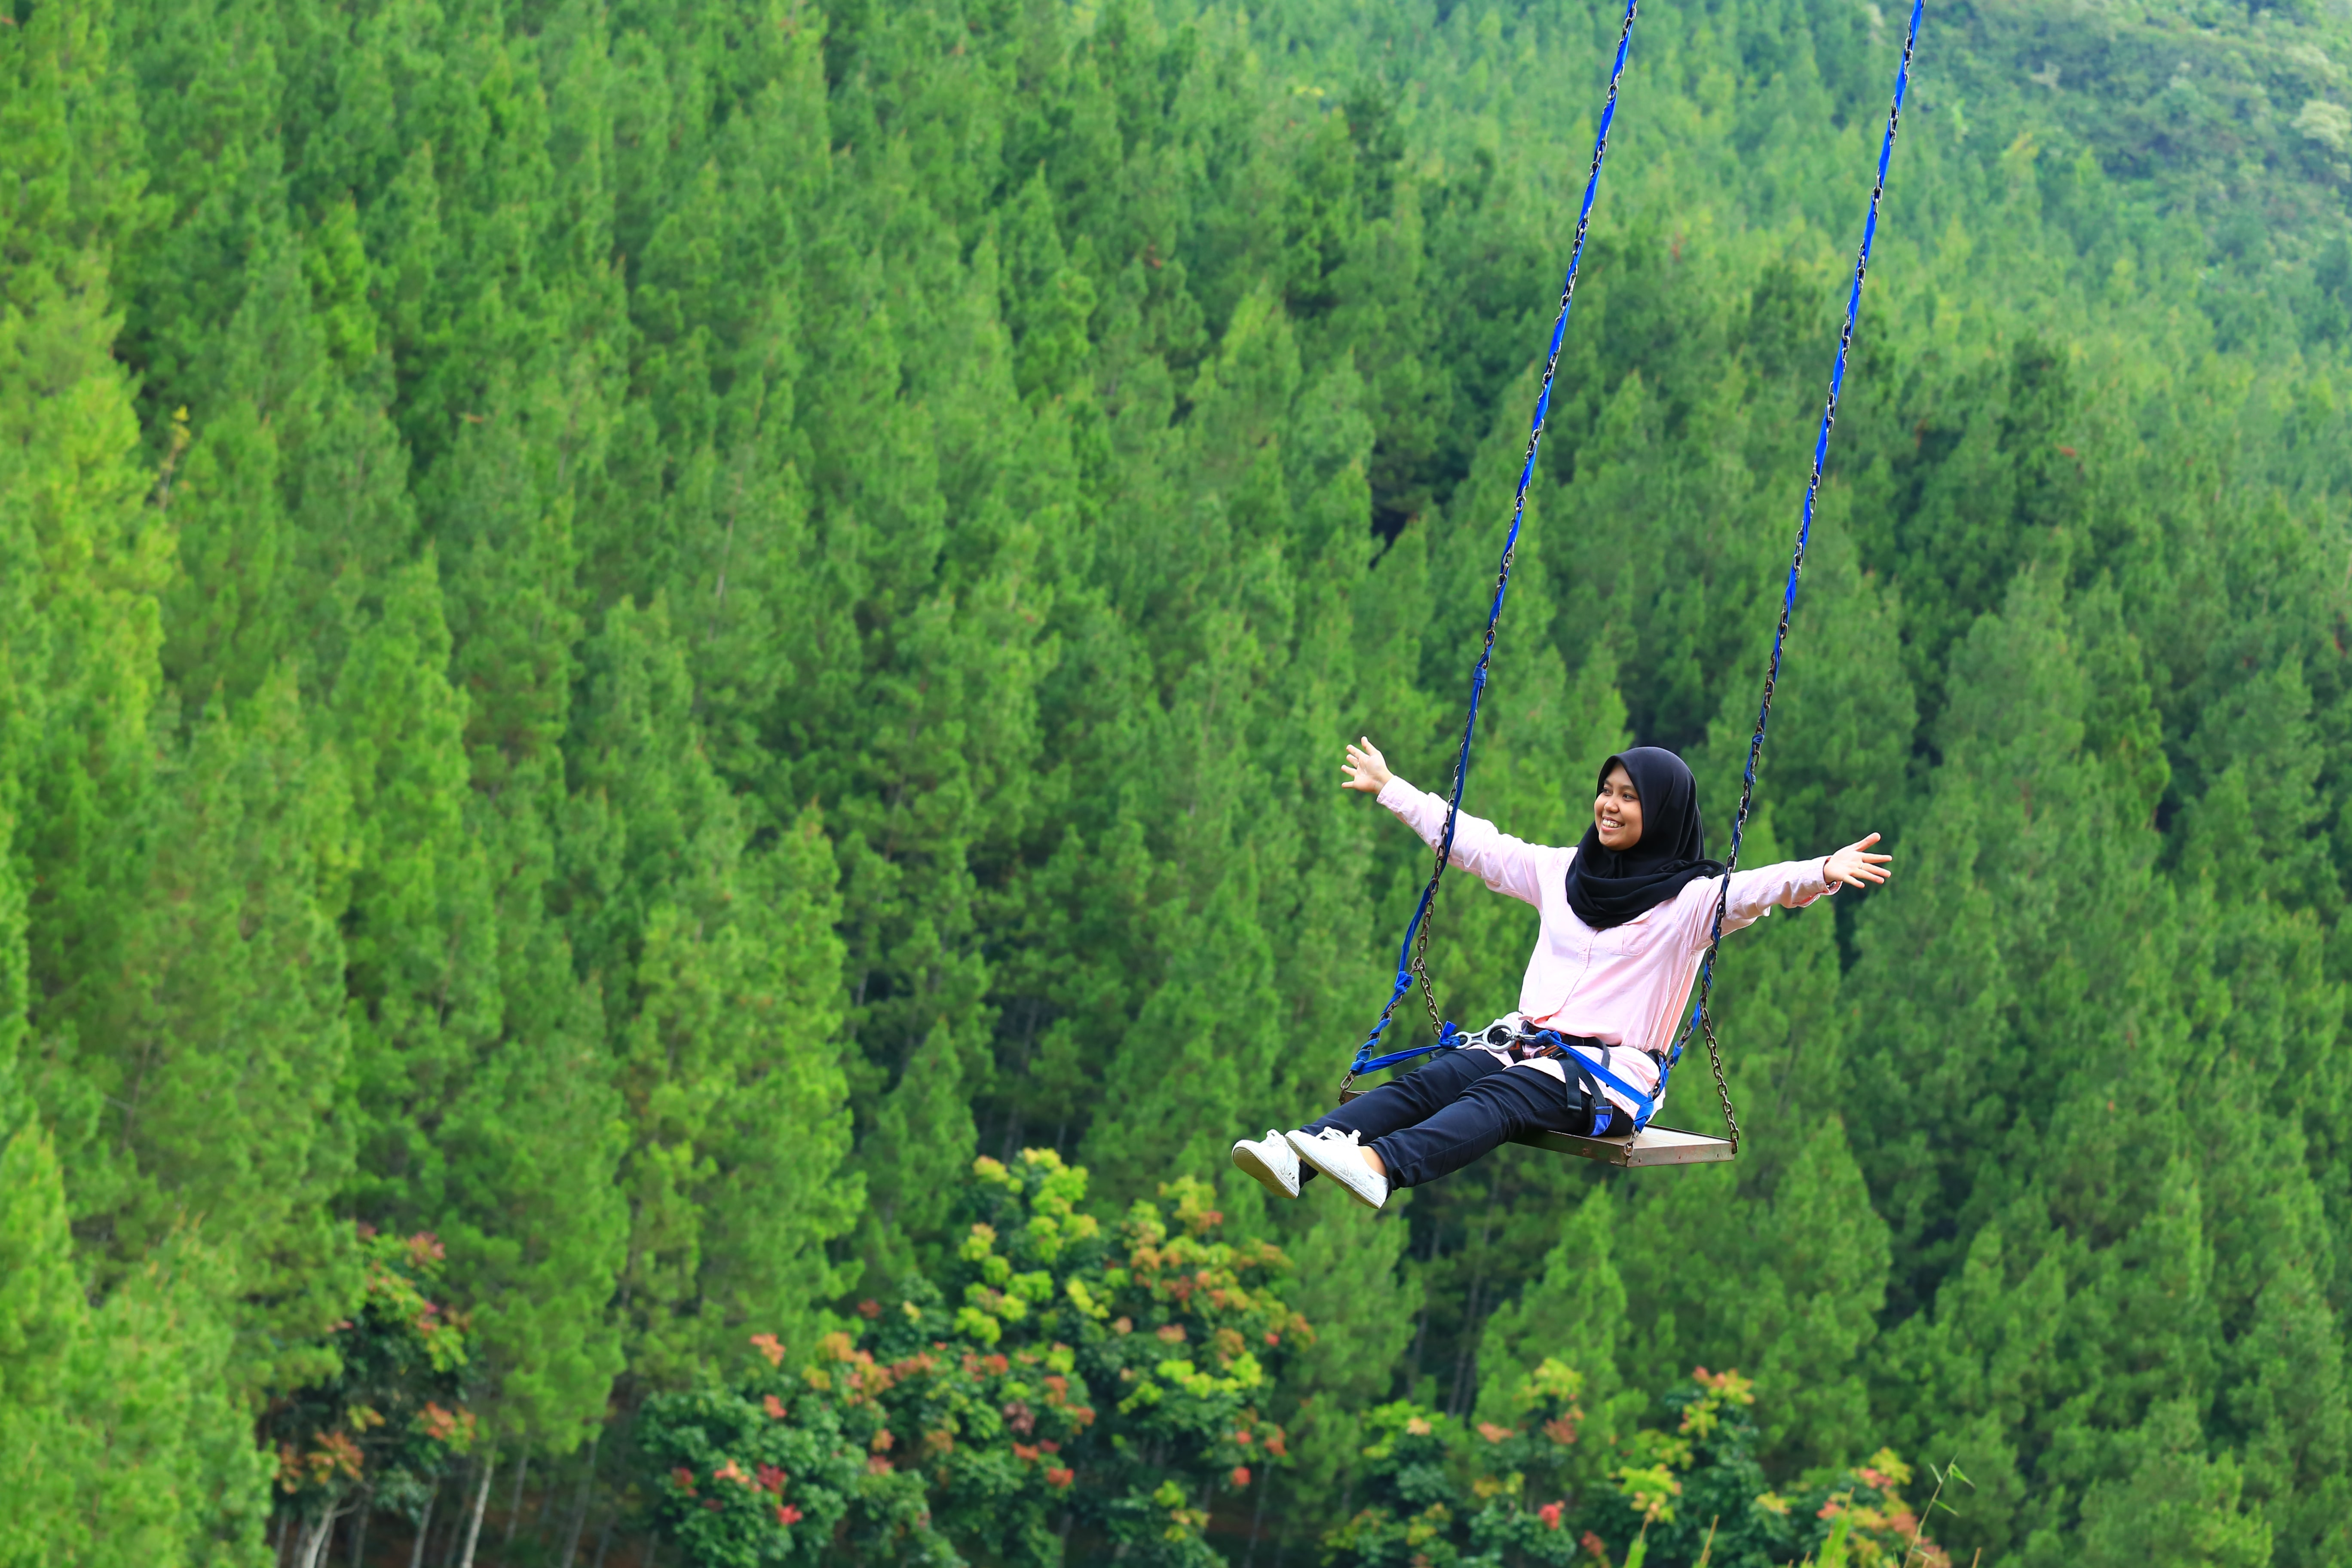 woman with open arms riding swing above green trees at daytime